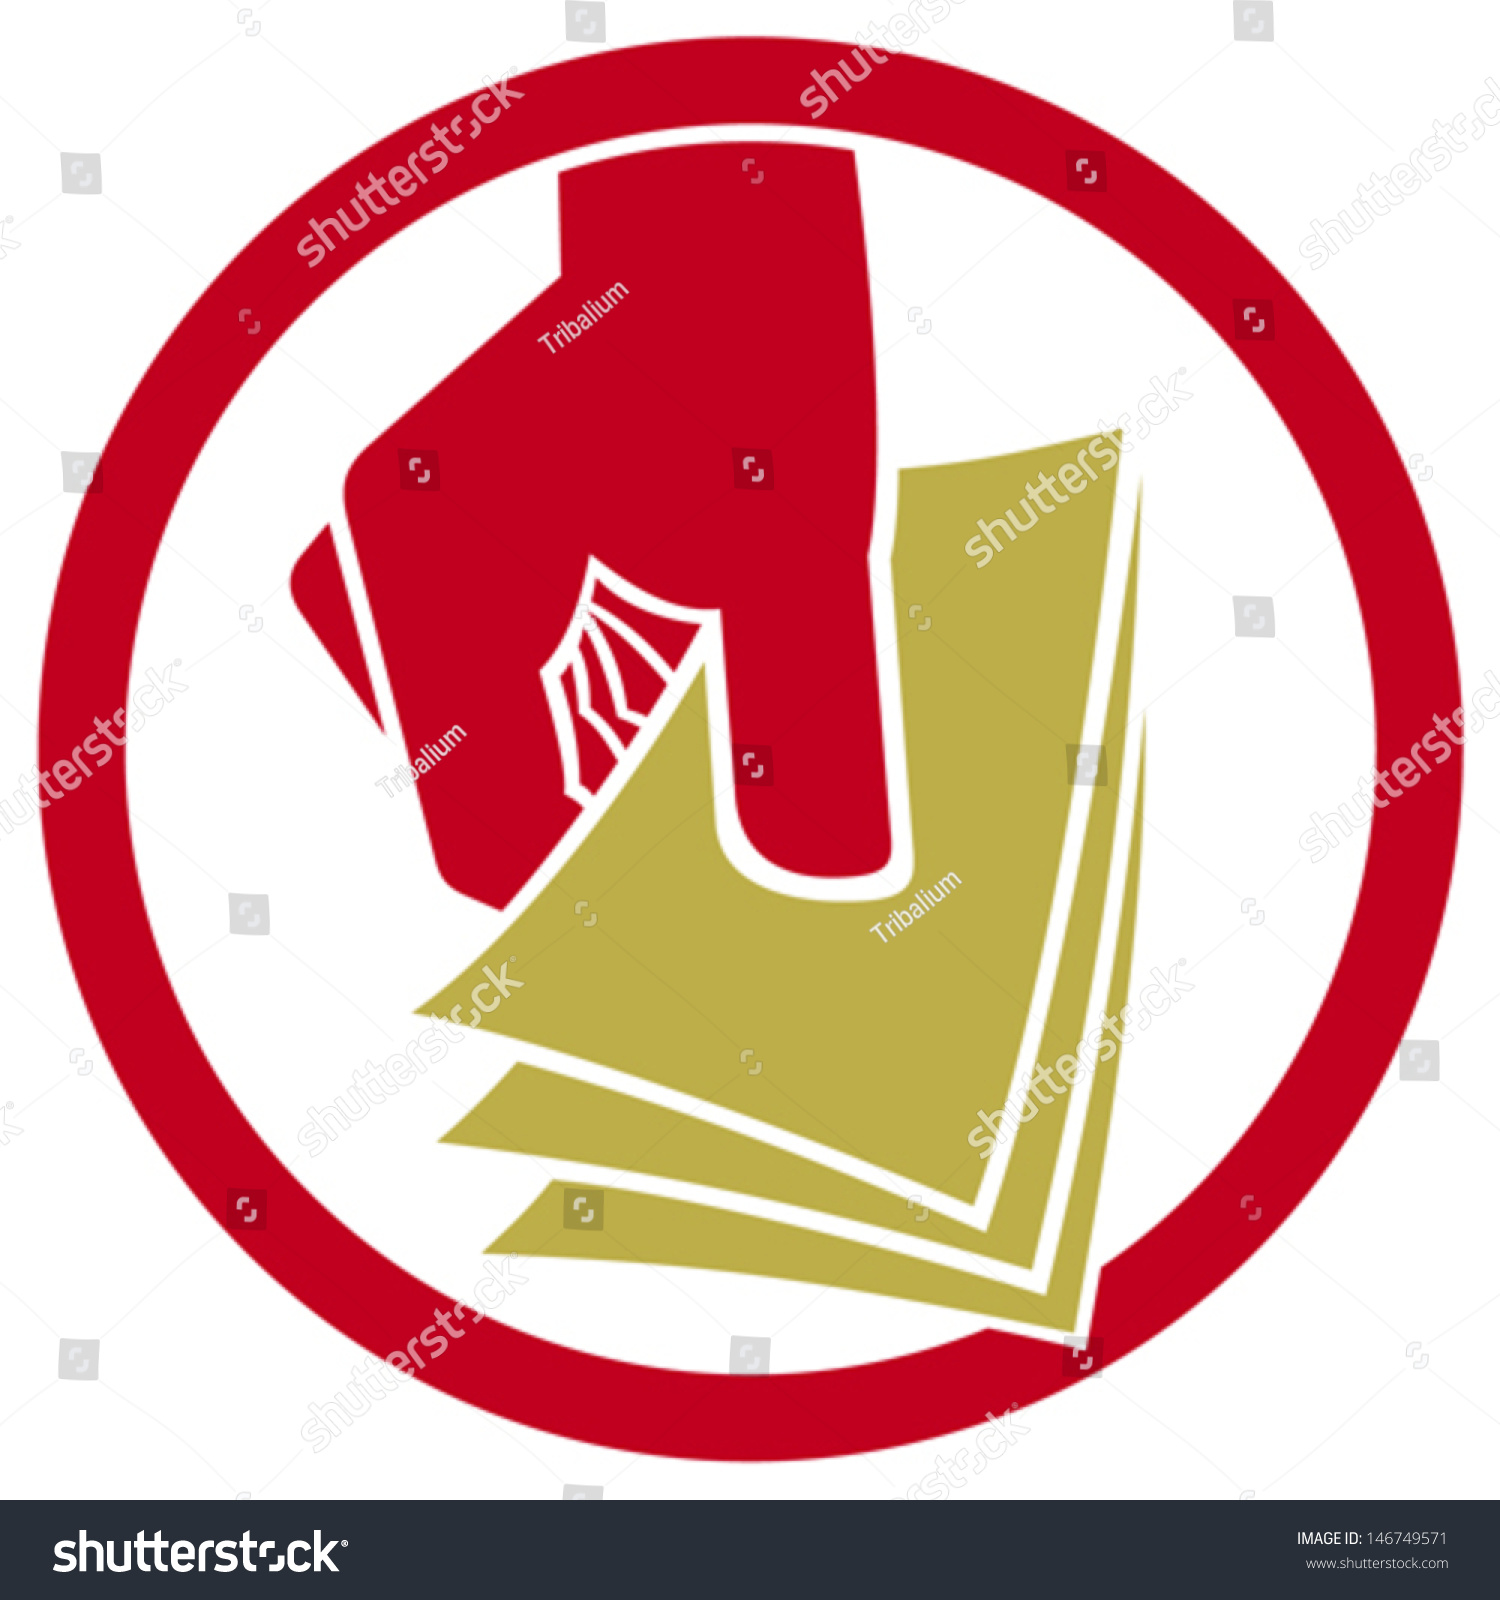 Hand giving money symbol icon stock vector 146749571 shutterstock hand giving money symbol icon buycottarizona